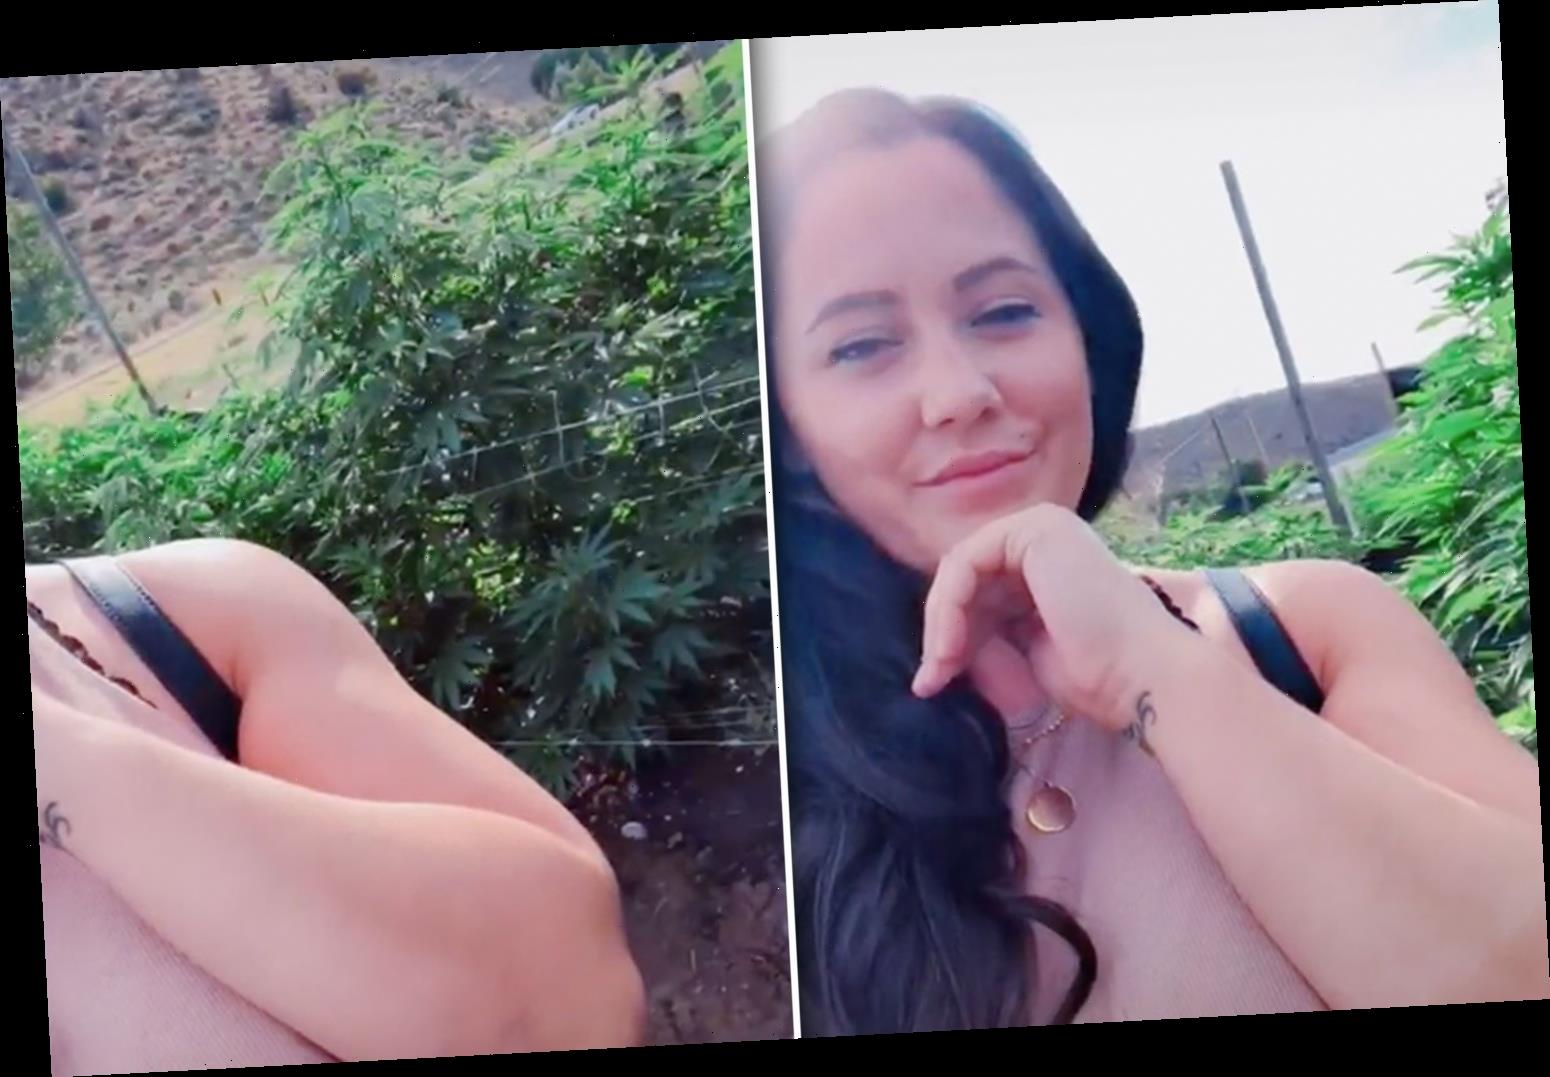 Teen Mom Jenelle Evans says she's 'obsessed' with weed in new TikTok video – The Sun